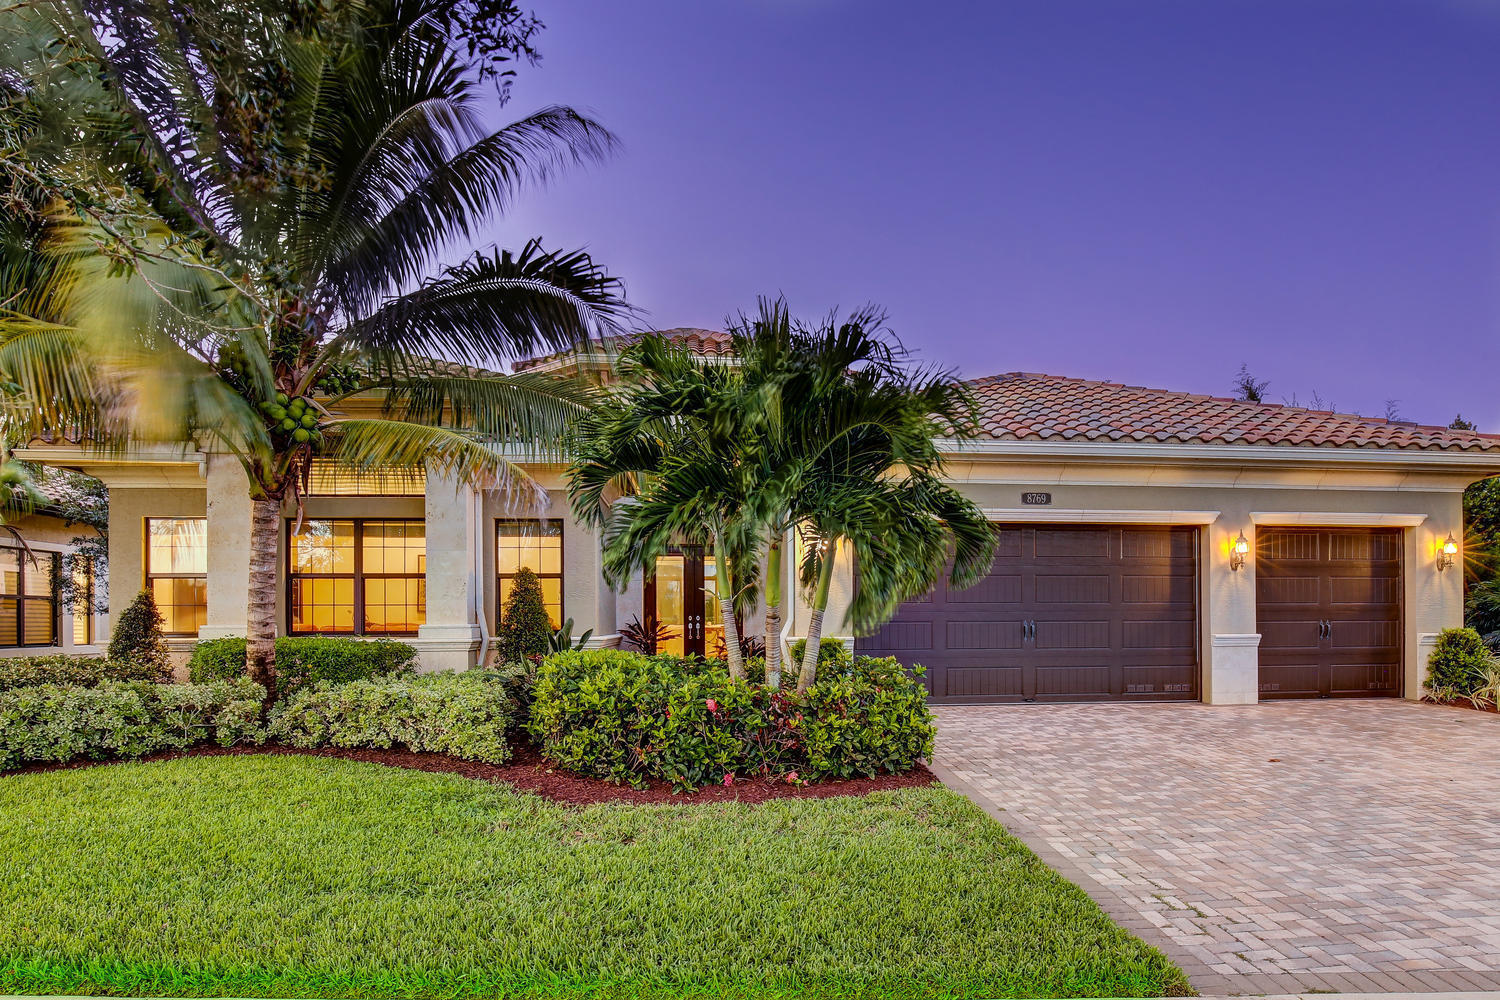 8769 Sydney Harbor Circle  Delray Beach, FL 33446